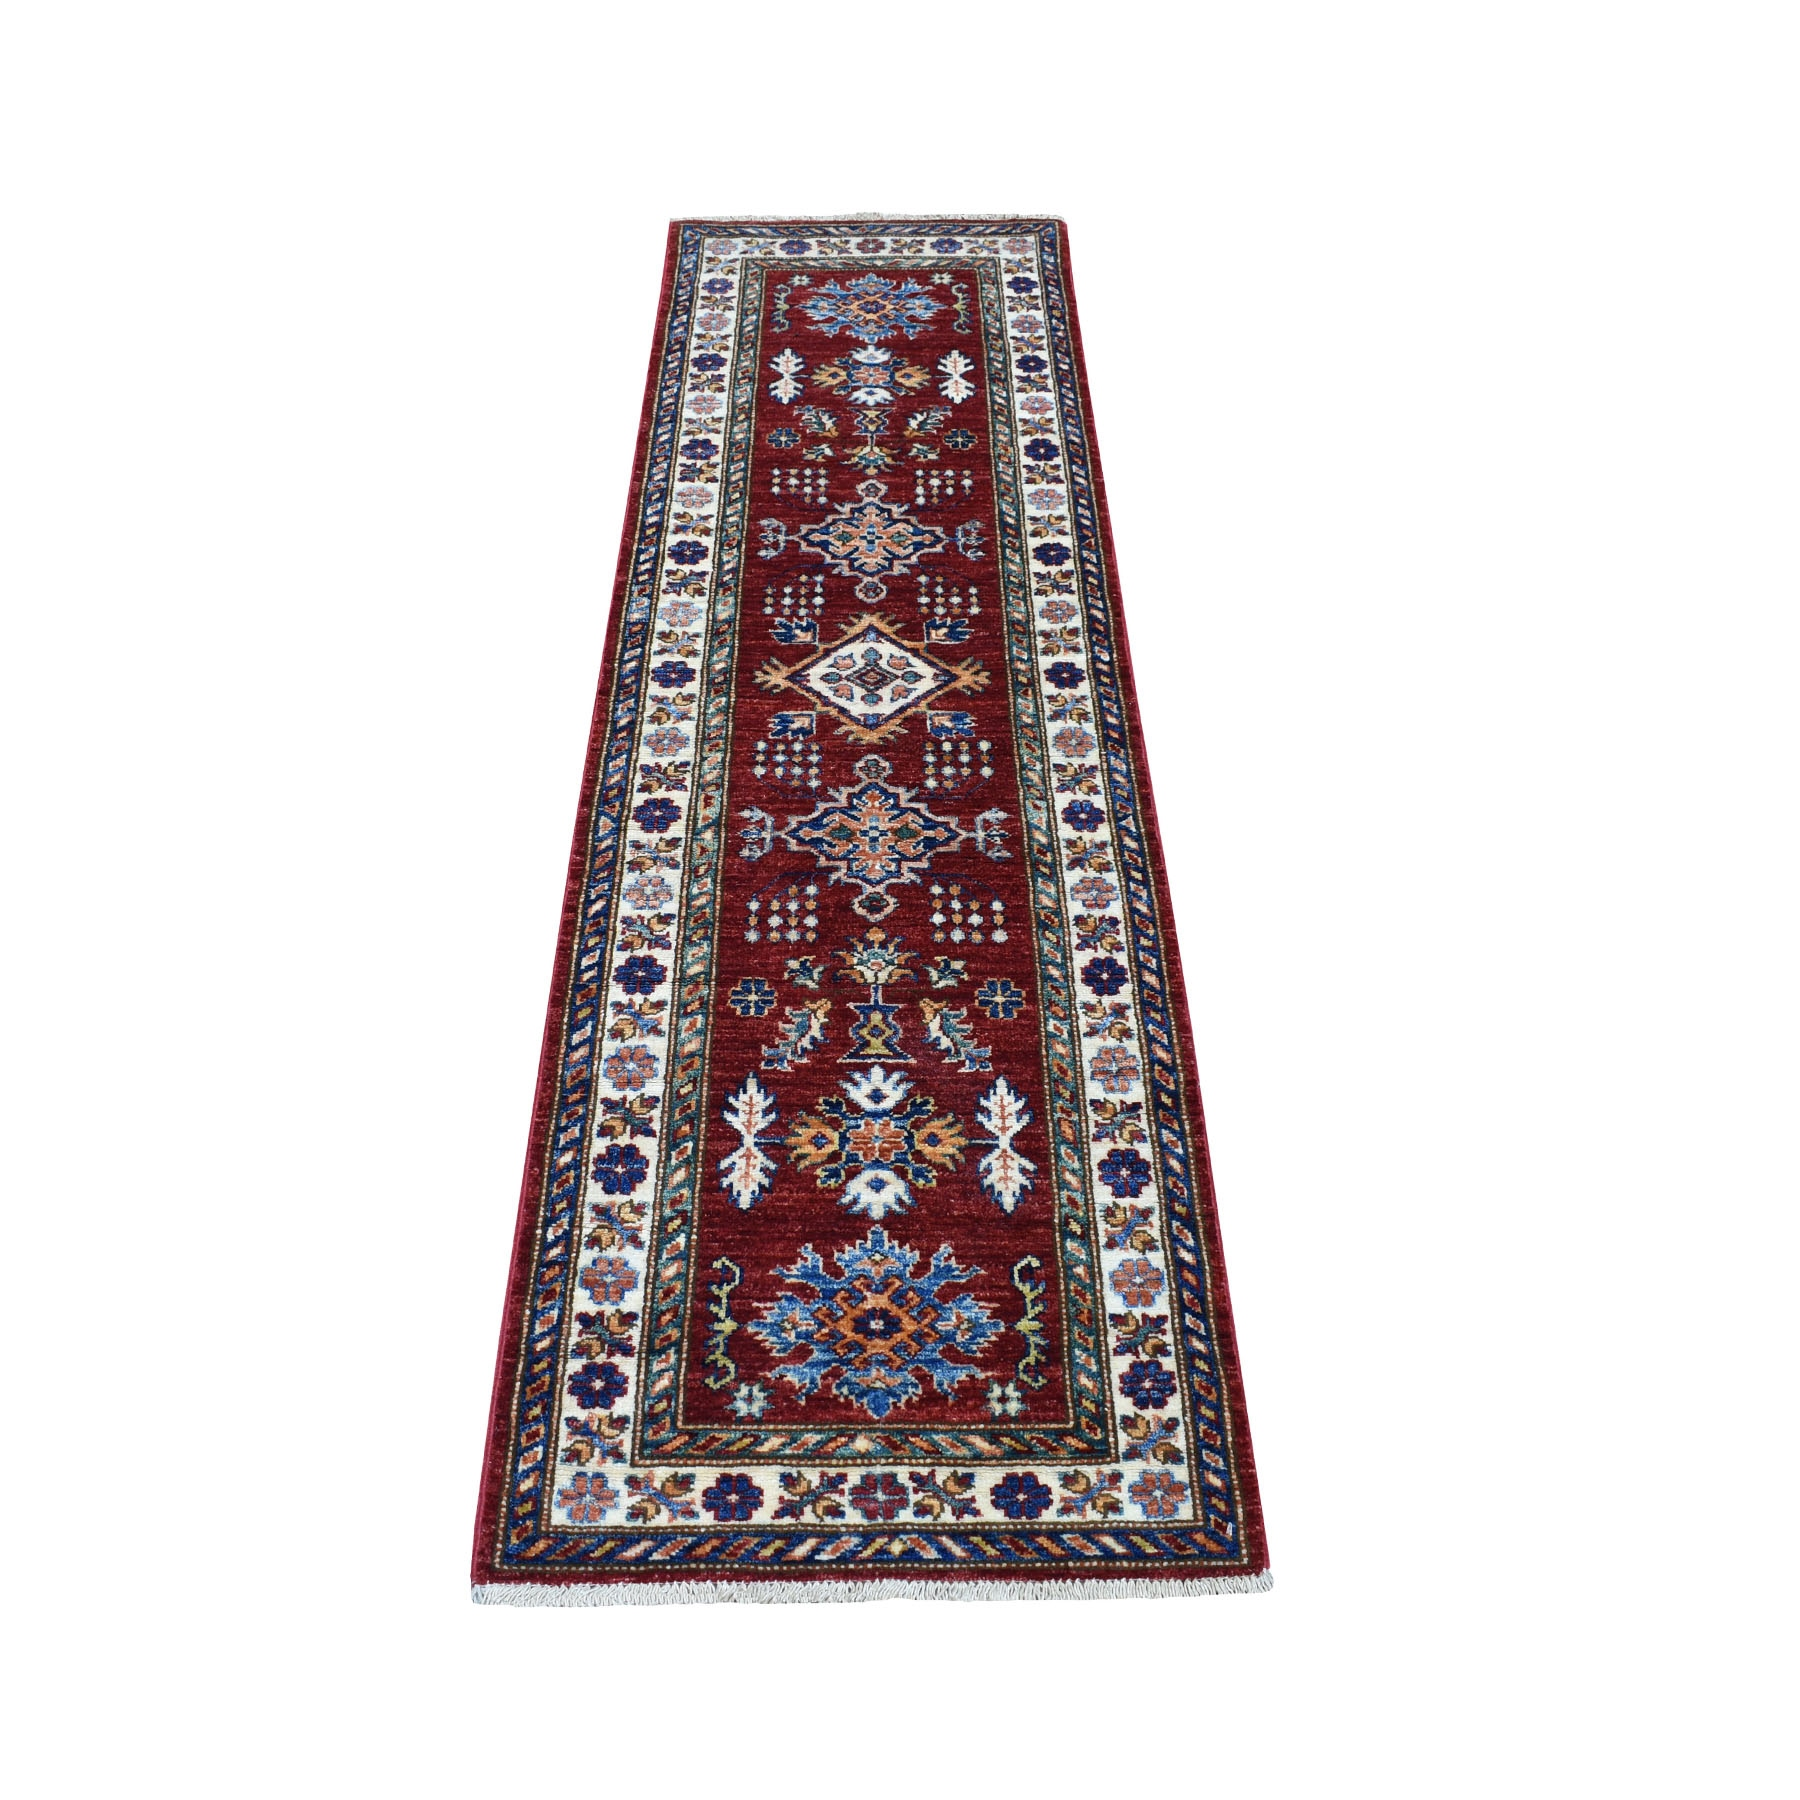 "2'x6'4"" Red Super Kazak Organic Wool Narrow Runner Hand Woven Oriental Rug"